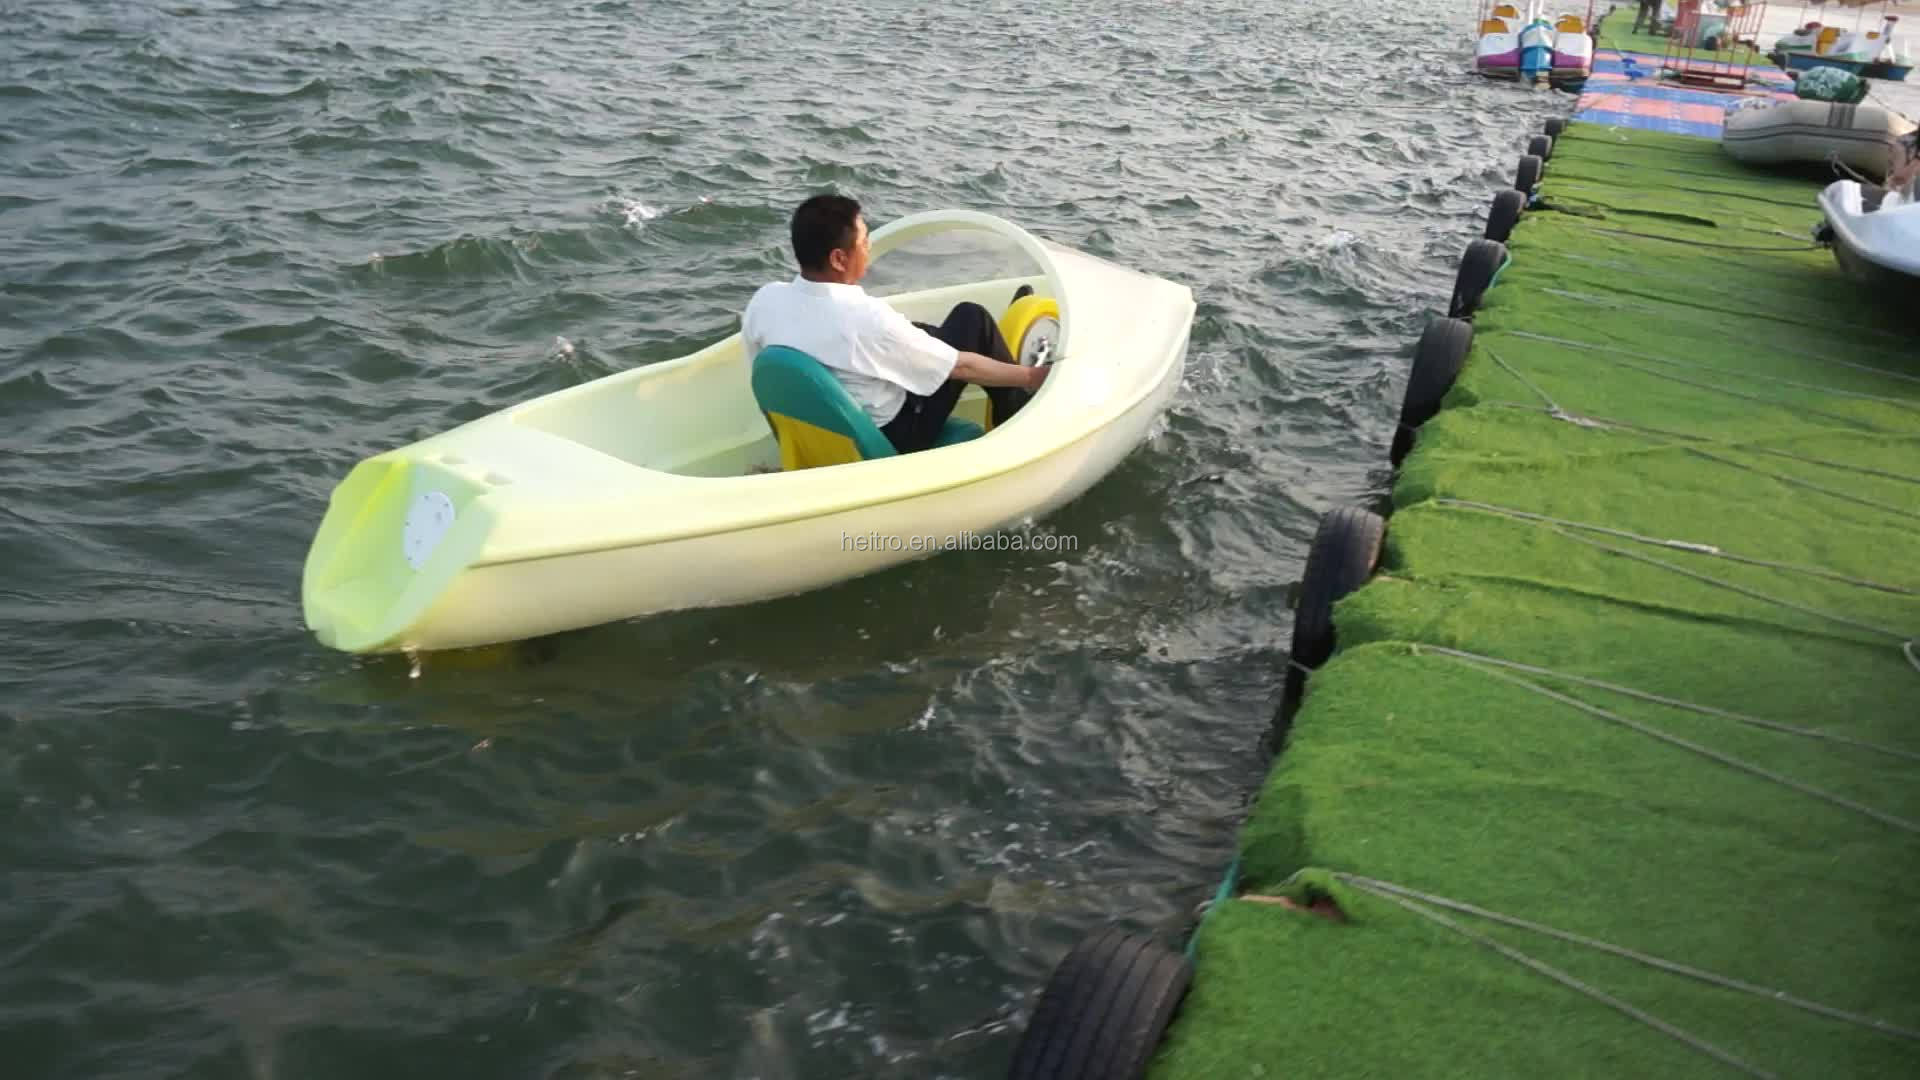 One Person Paddle Boat - Buy One Person Paddle Boat ...